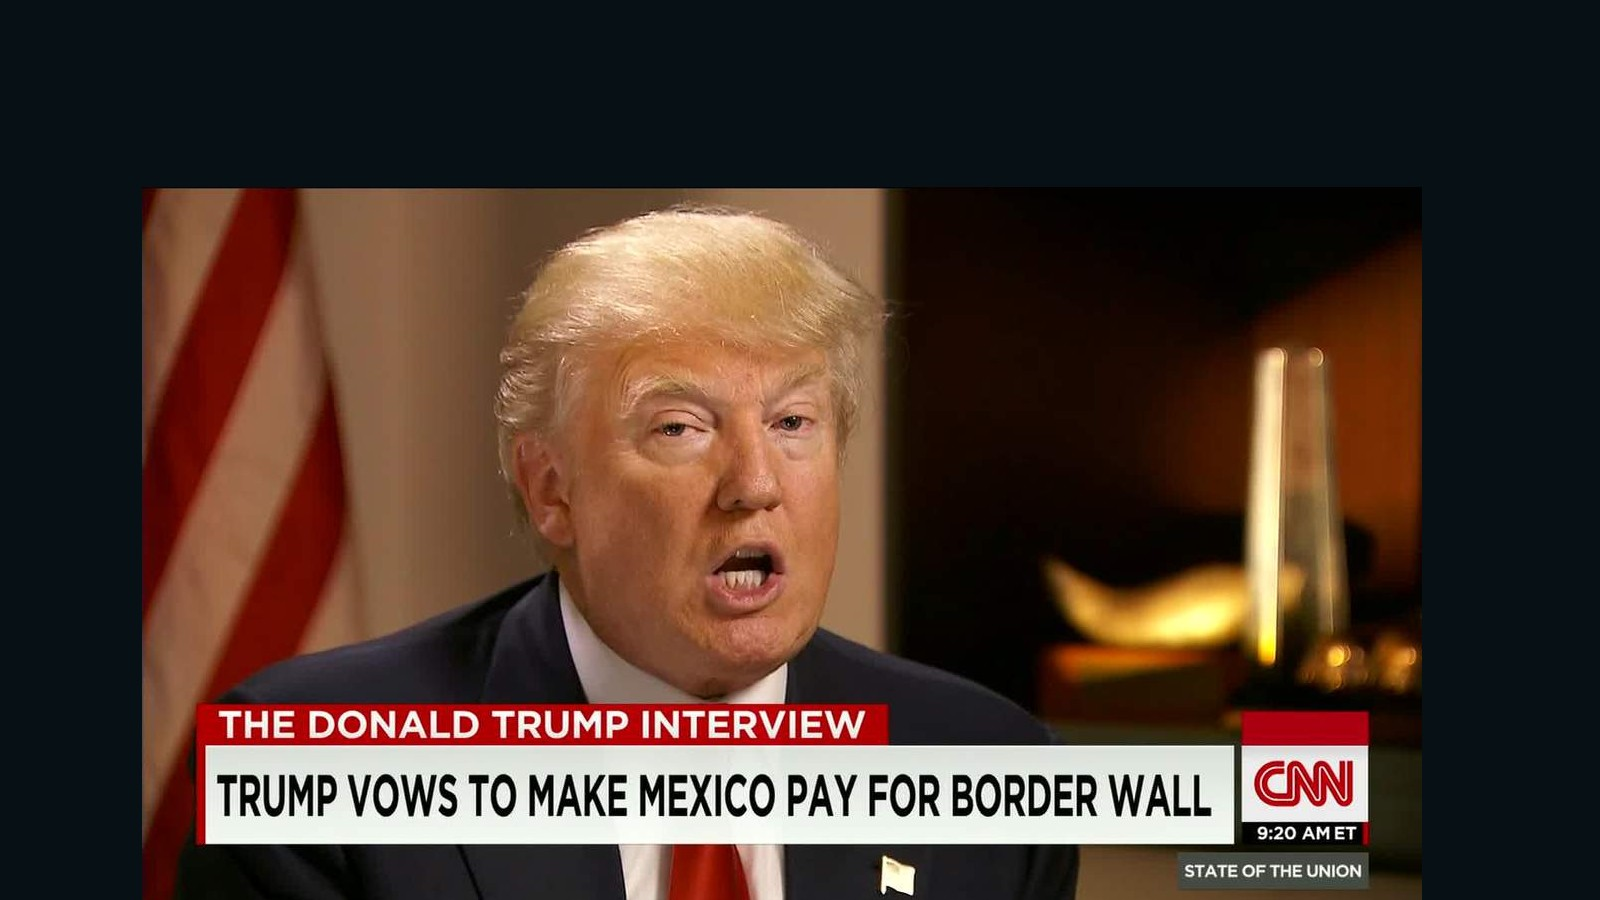 Sotu >> Trump: I will make Mexico pay for a wall on the border - CNN Video